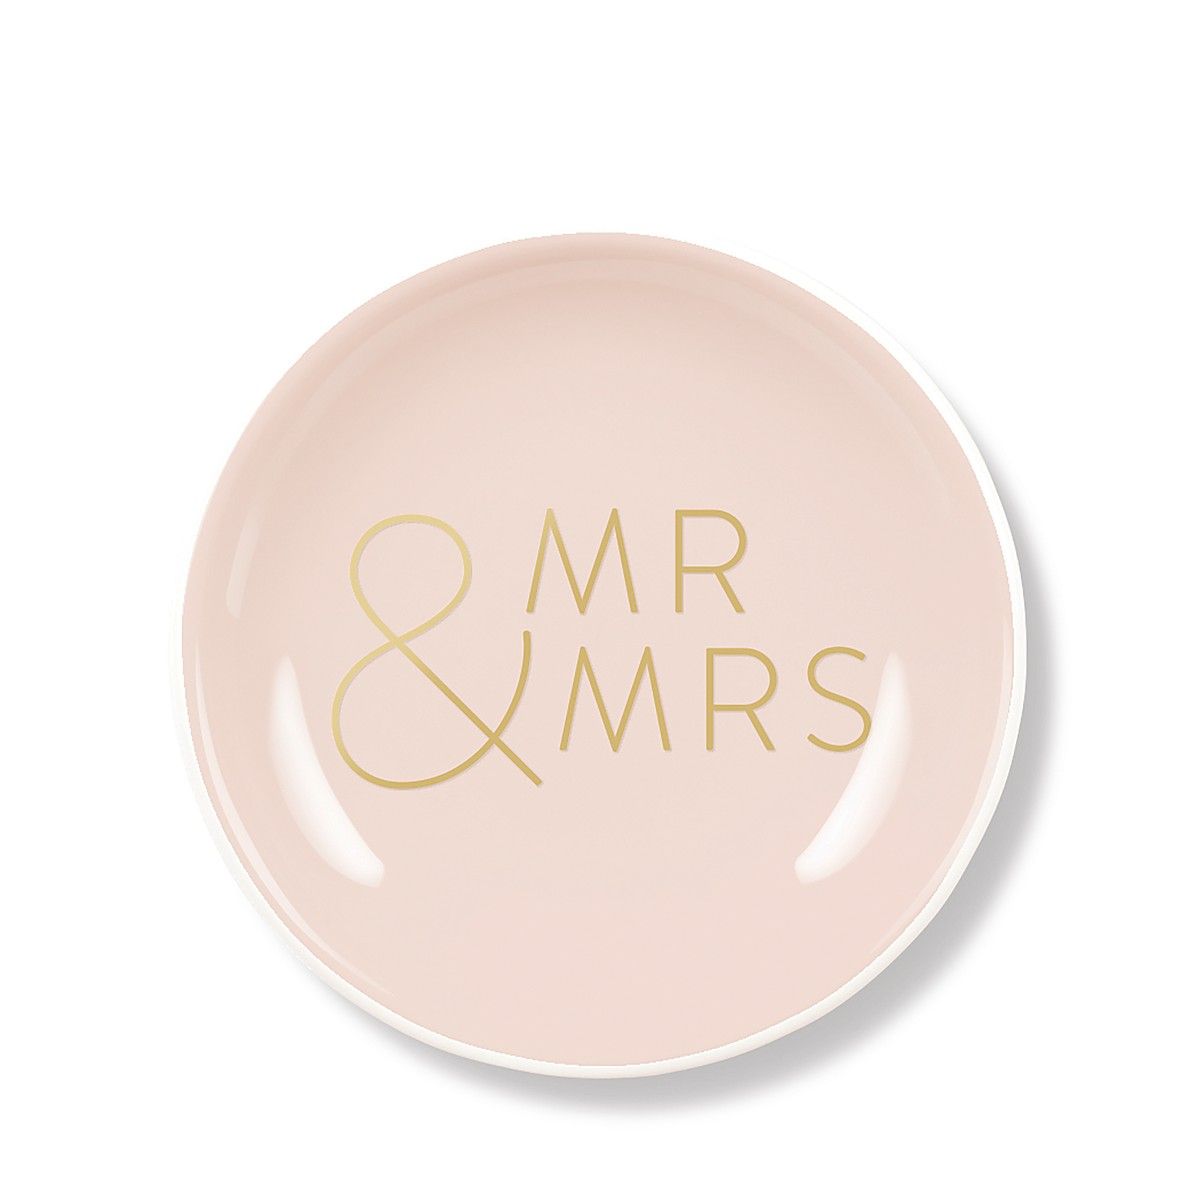 Bloomingdales Tray Mr&Mrs - The Luxe Diary's Valentine's Gift List